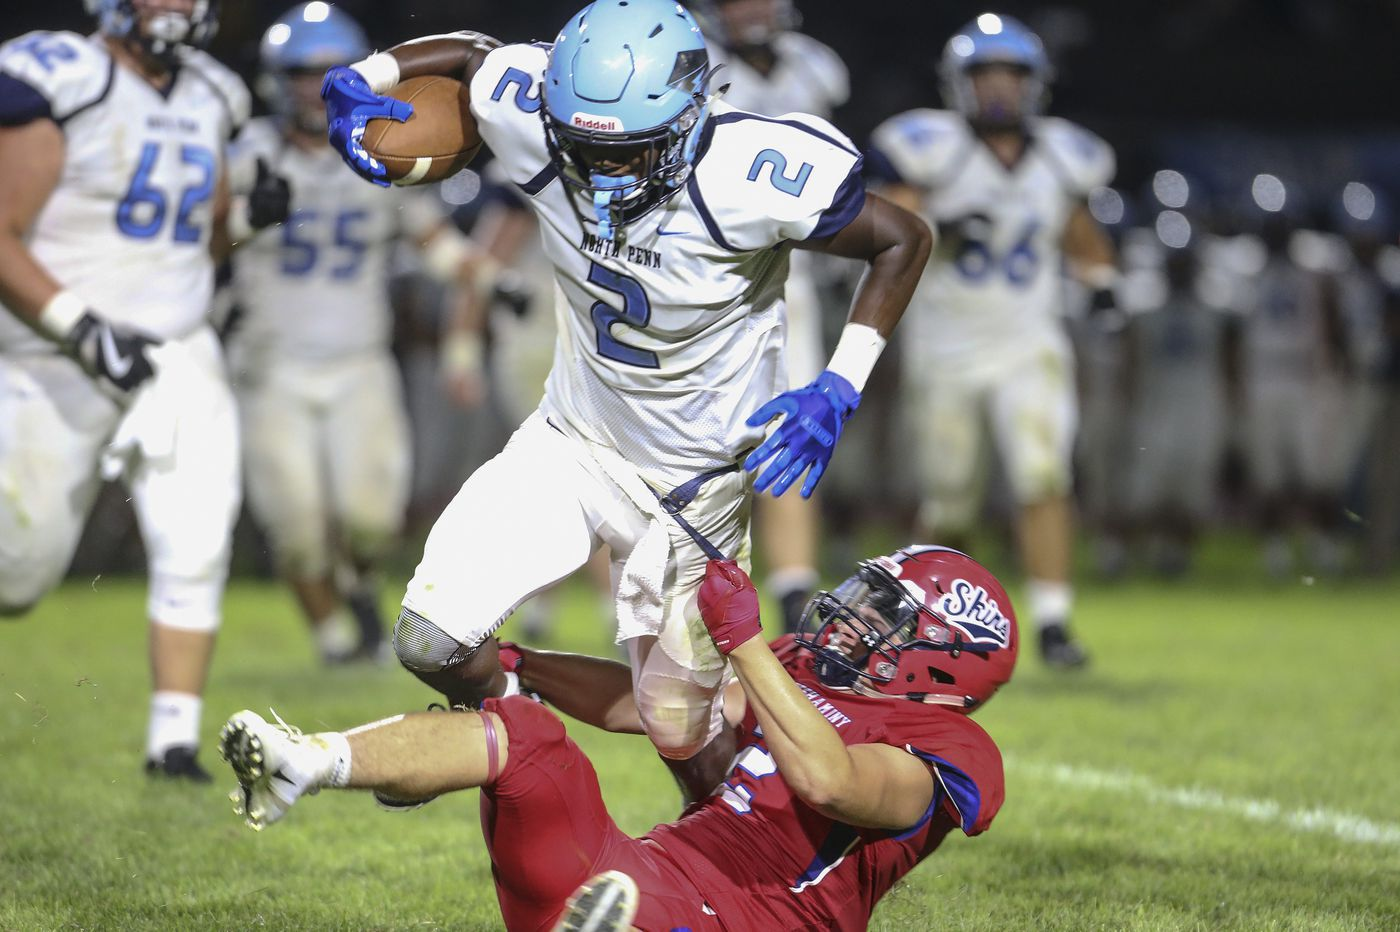 Familiar District 1 football playoff foes Neshaminy and North Penn to meet again